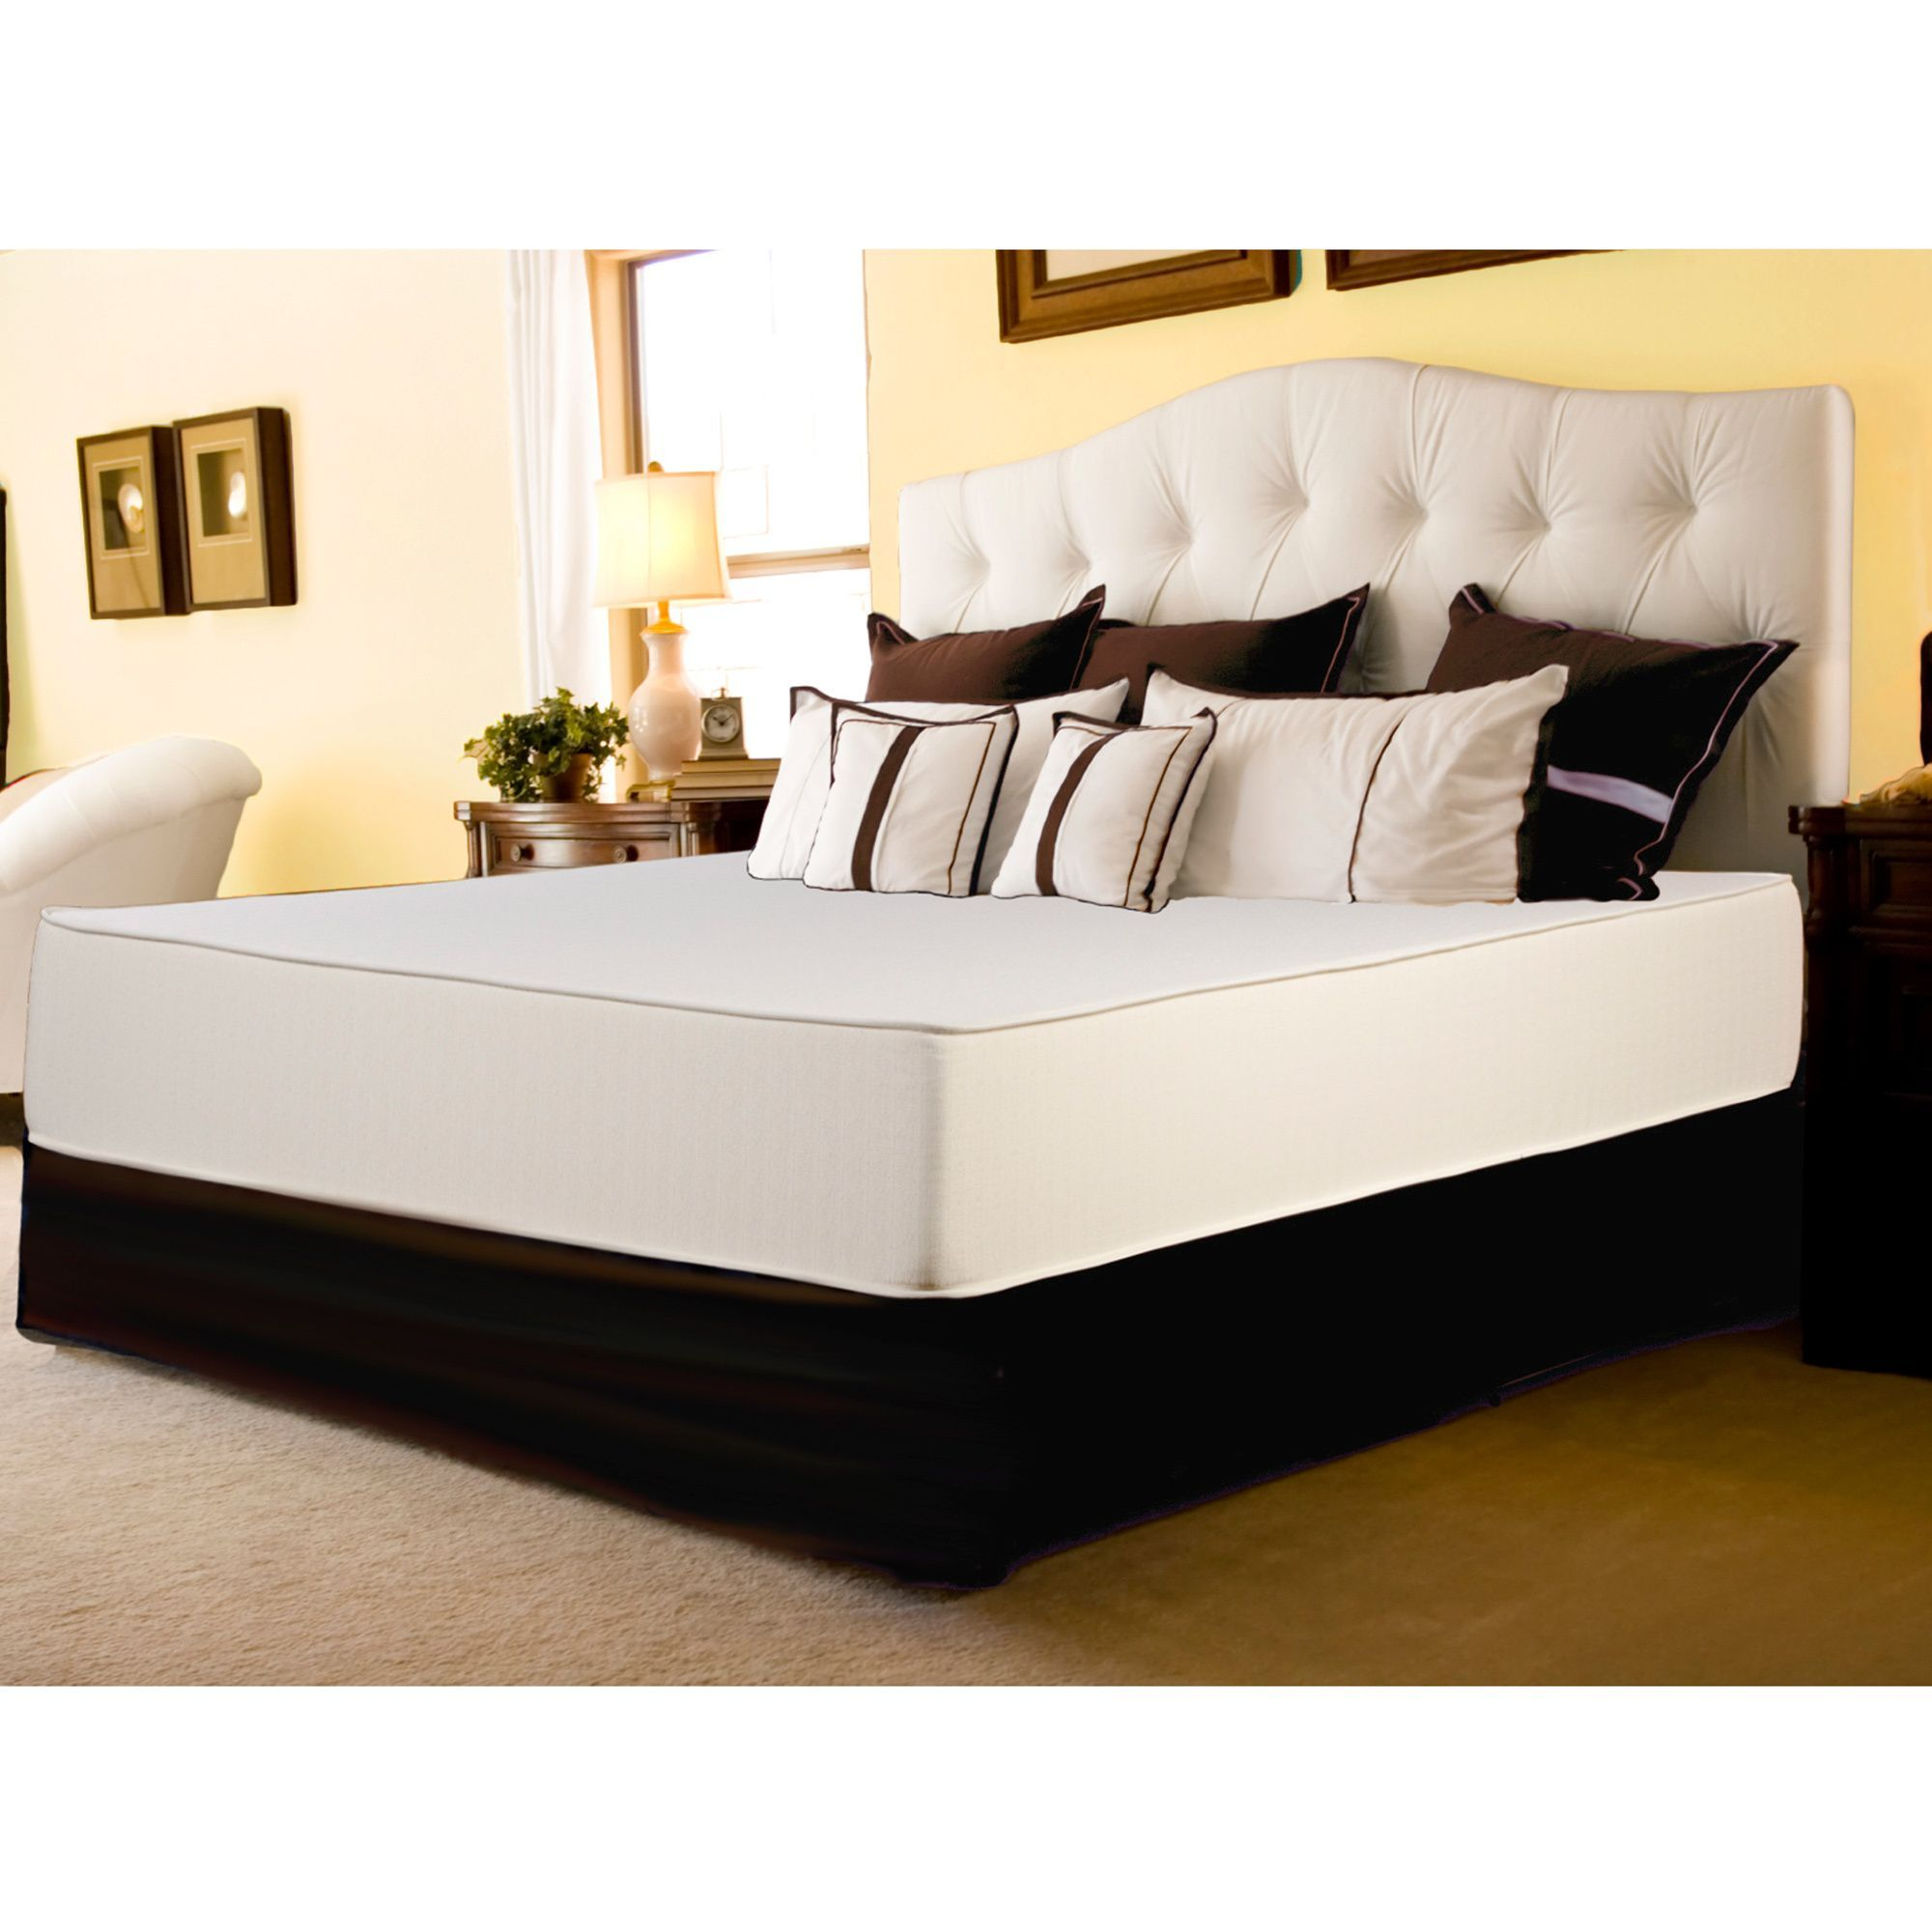 mattress gettyimages finally box bed in movement a outlet the joins firm